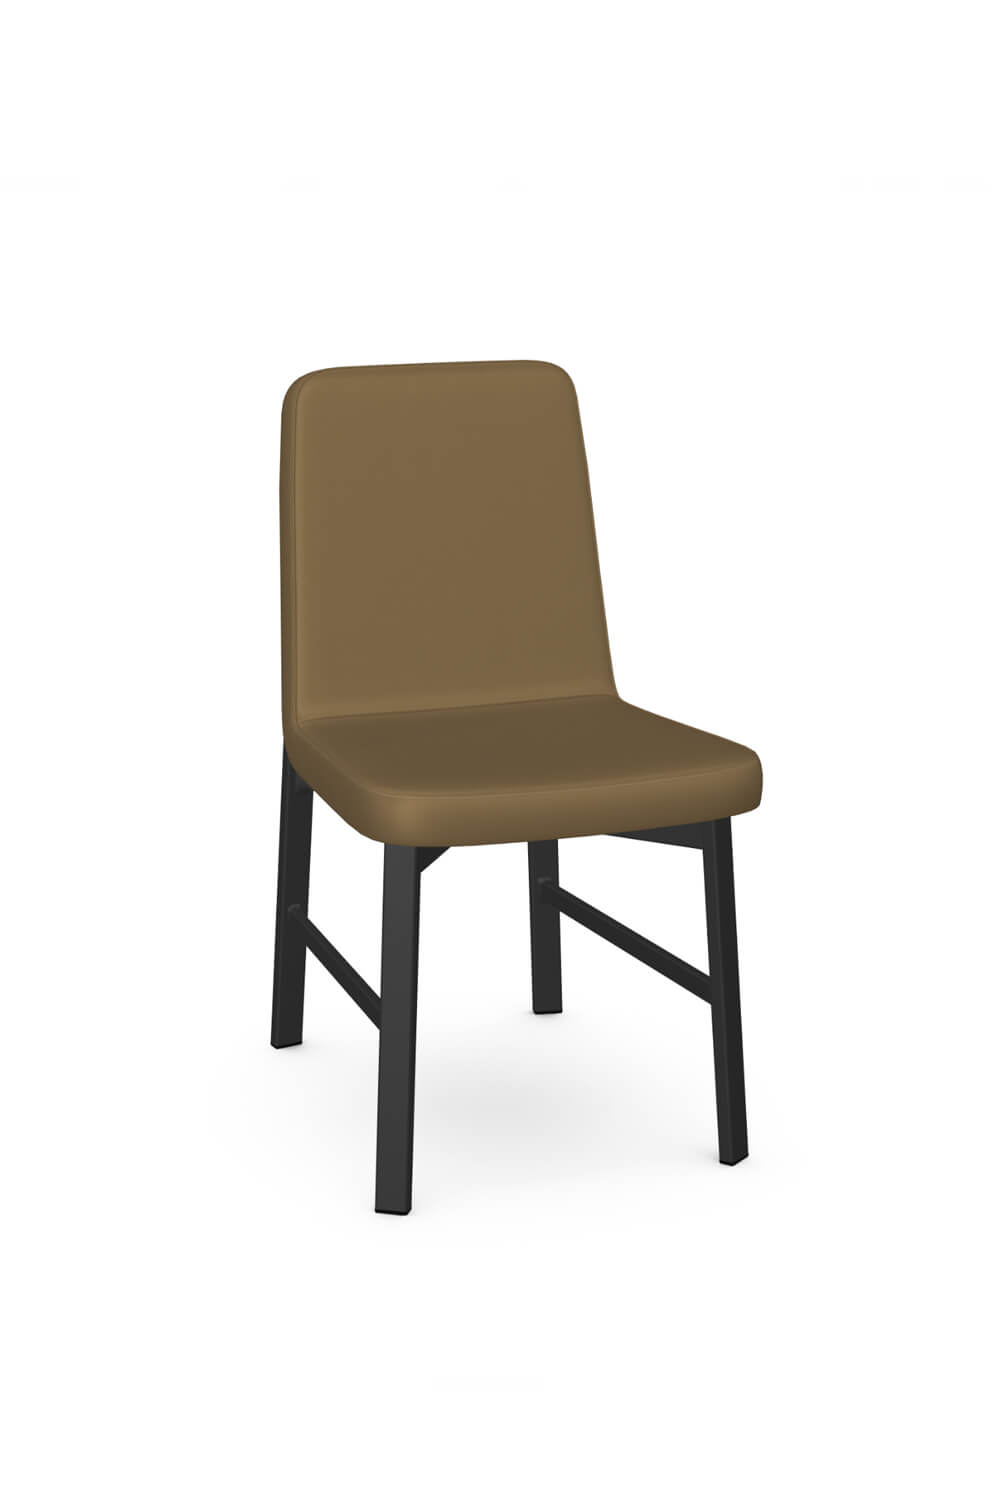 Amisco's Waverly Upholstered Modern Dining Chair in Brown